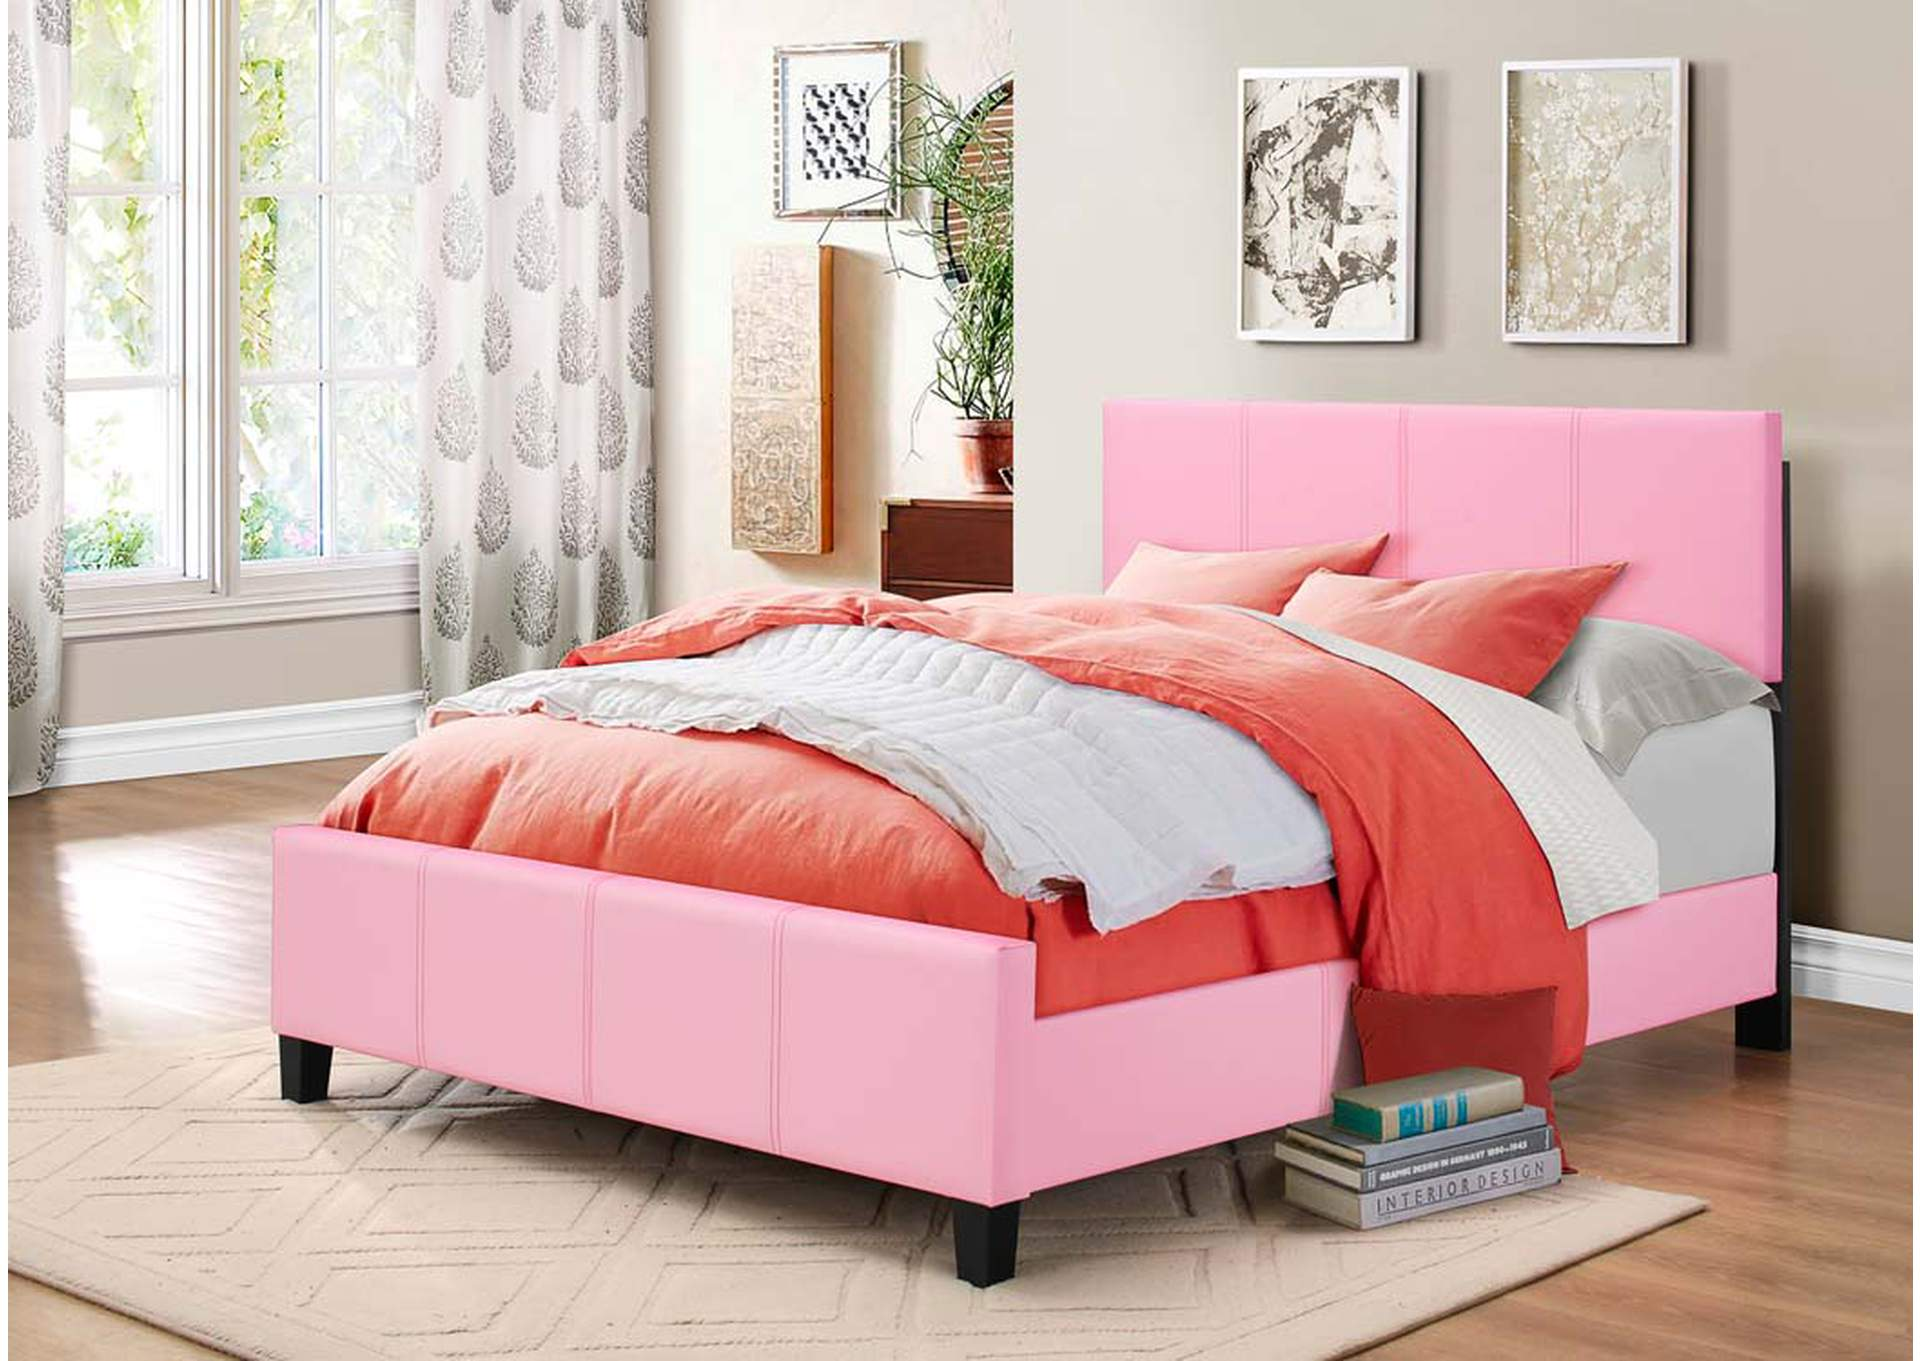 Coralayne Pink Panel King Bed,Global Trading